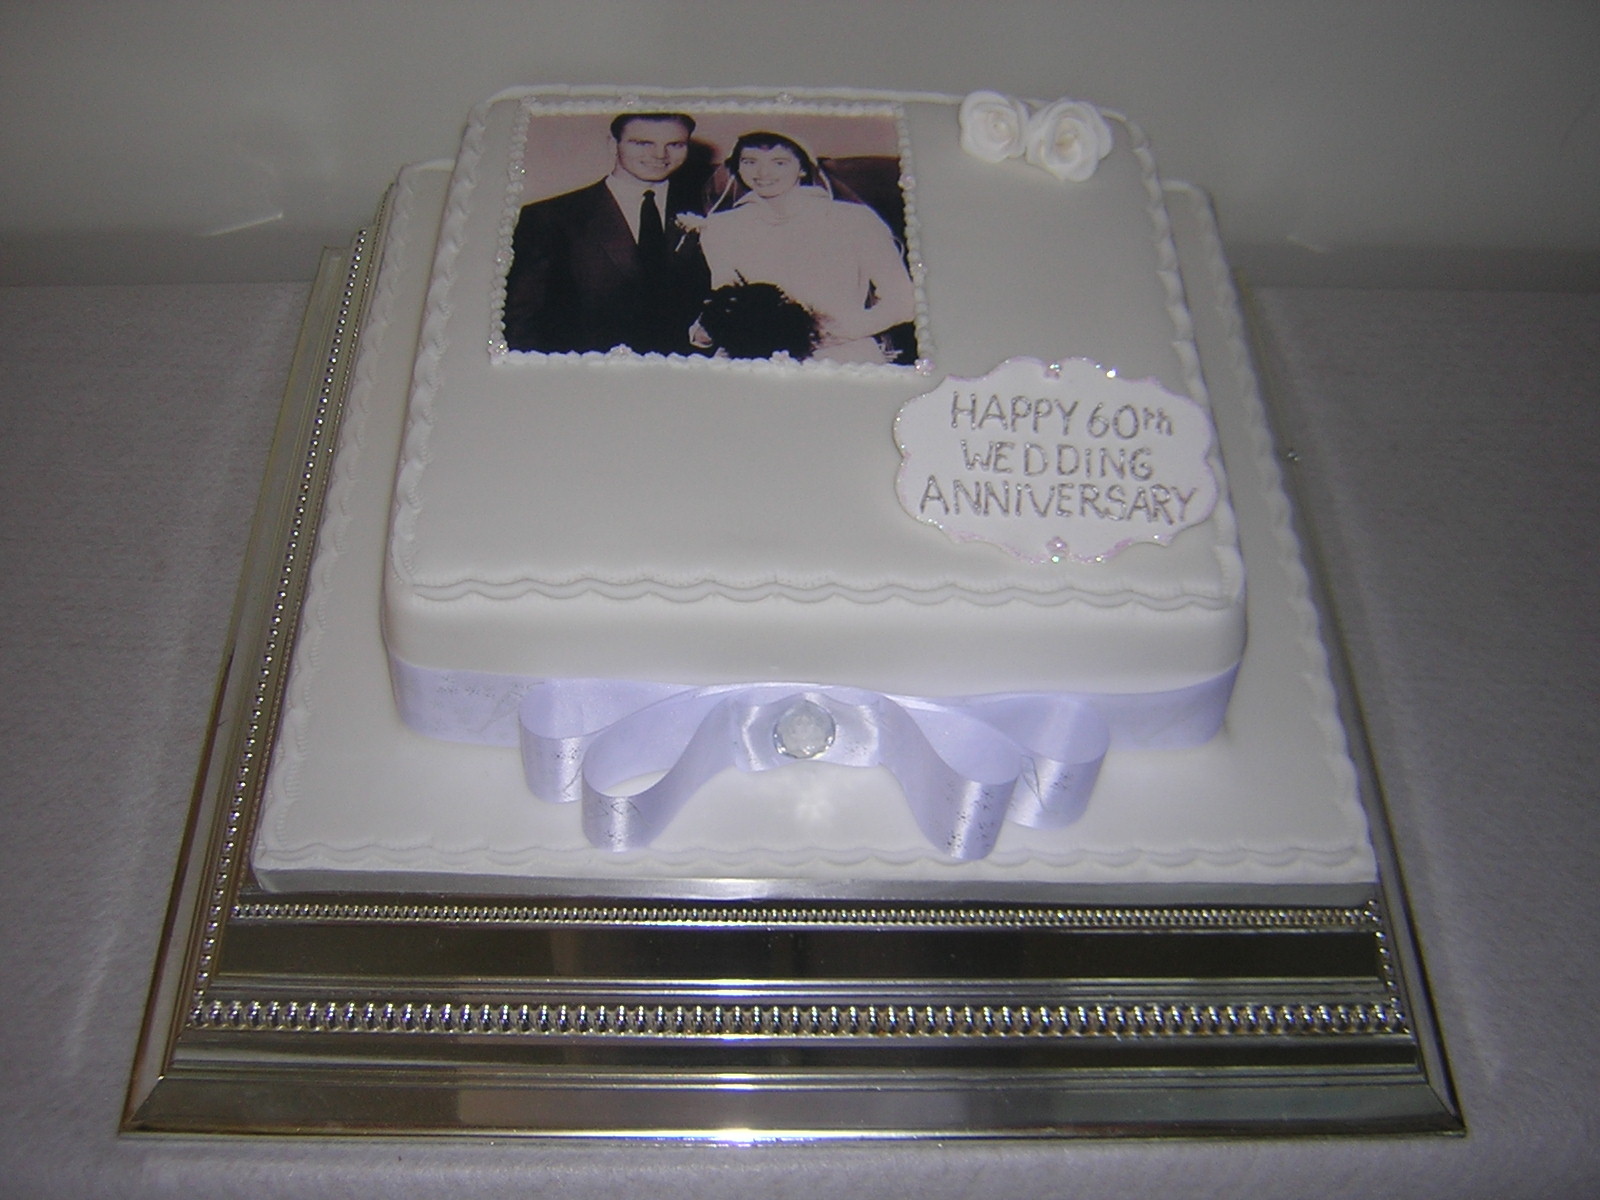 Cake Decorations For Diamond Wedding Anniversary : 60th wedding anniversary ideas on Pinterest Thumbprint ...